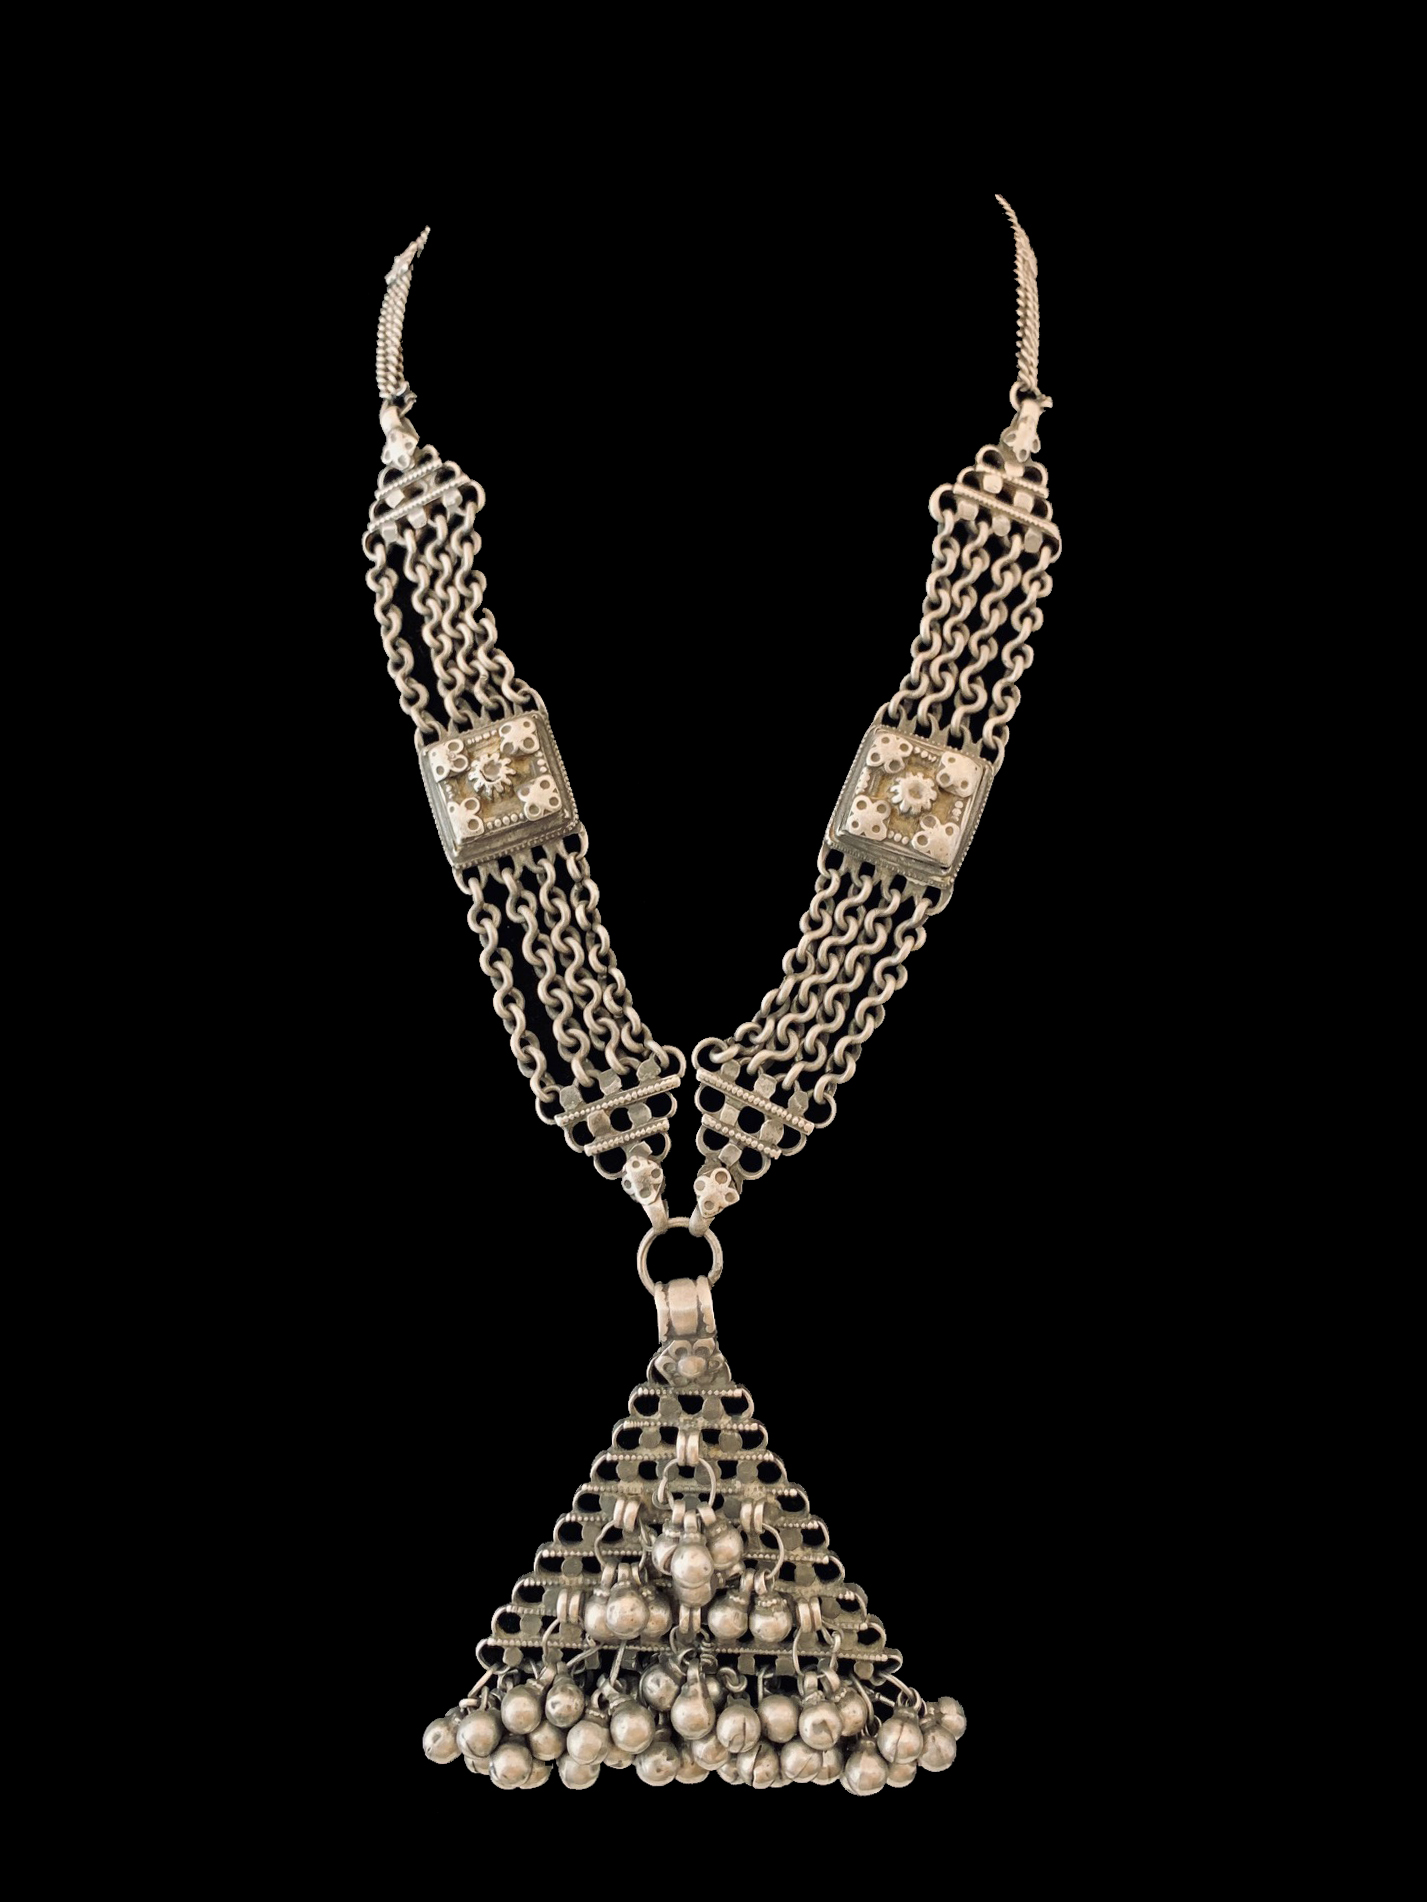 Tribal Silver Necklace with Triangular Pendant - India